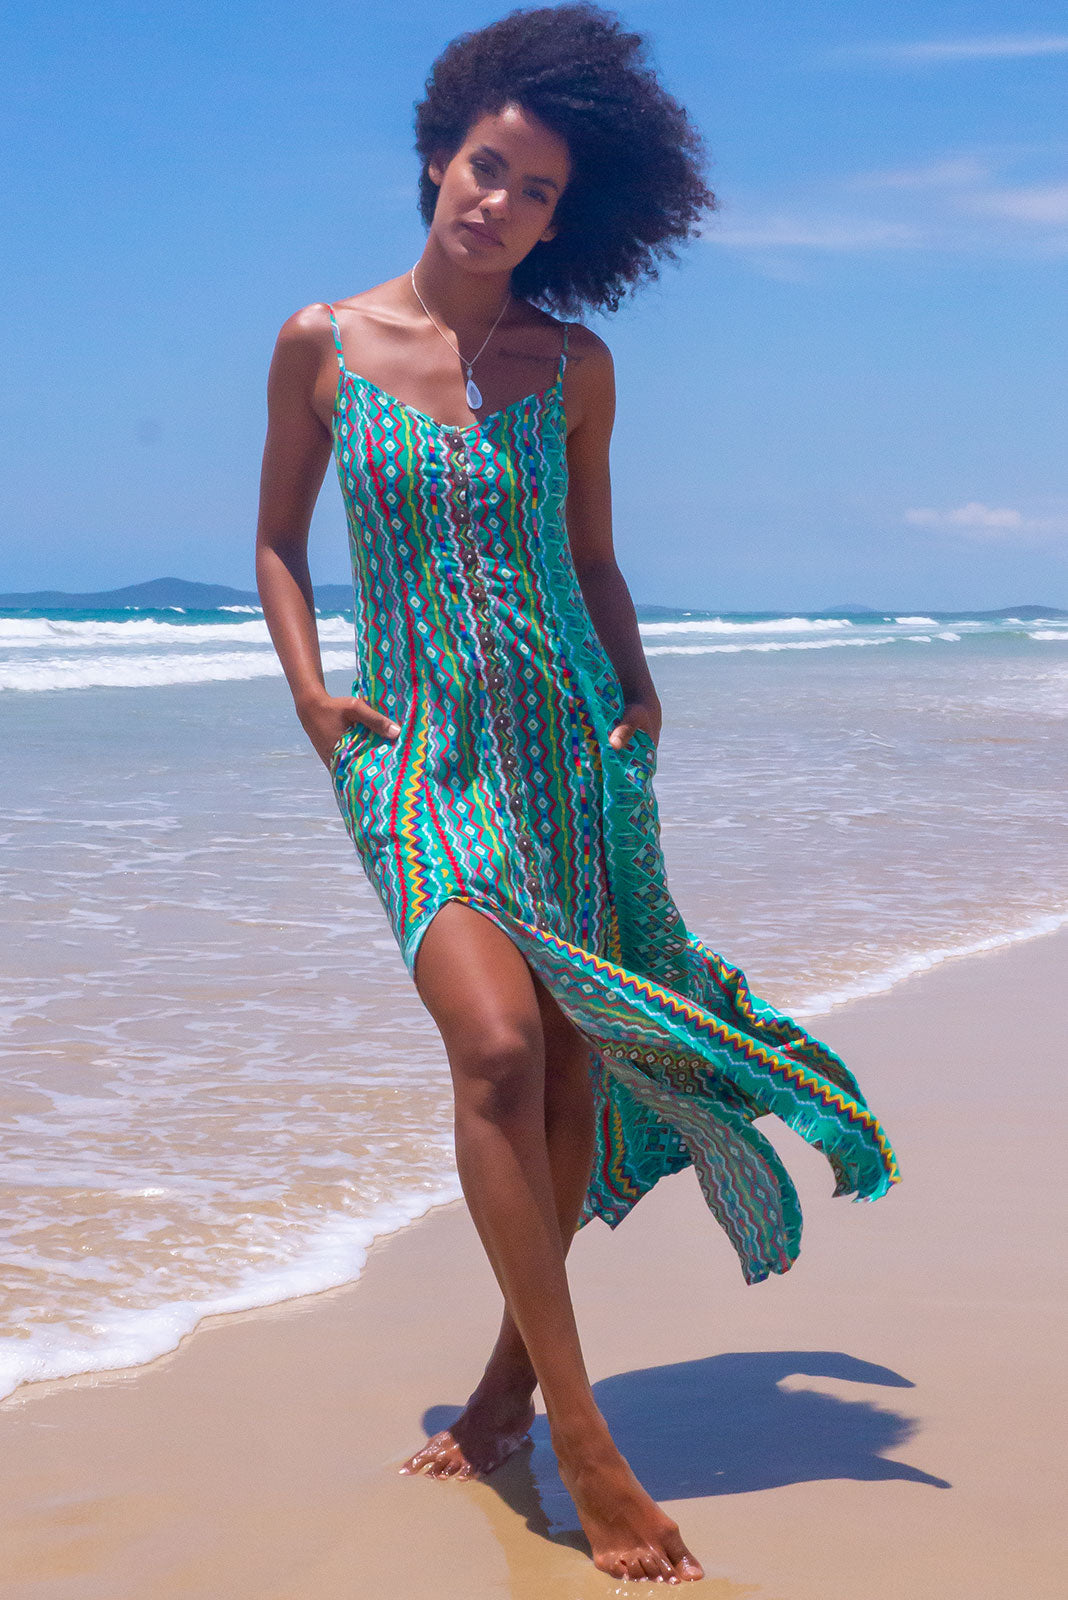 The Luella Paz Green Maxi Dress features coconut shell buttons down front, scooped neckline, adjustable spaghetti straps, streamlined cut, front opening and two splits at the front sides of skirt, side pockets and 100% rayon in green, retro aztec inspired stripe print.